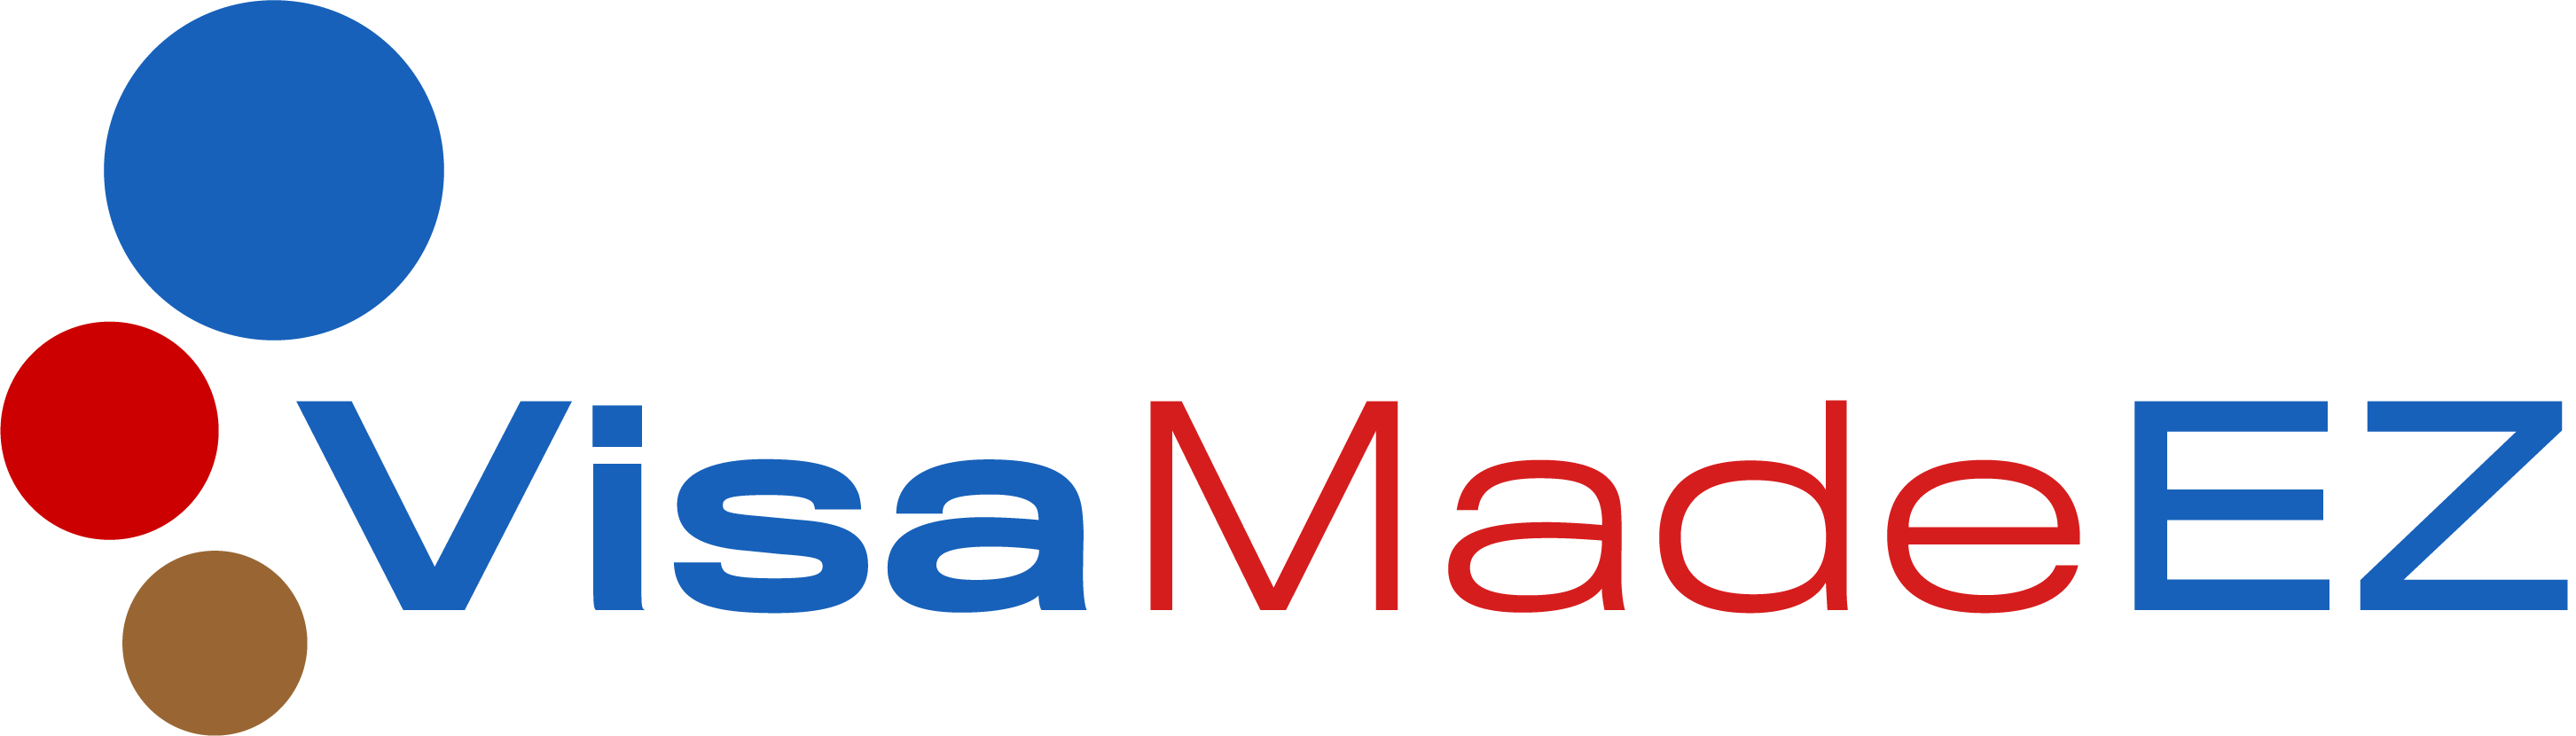 Visa_made_EZ_logo